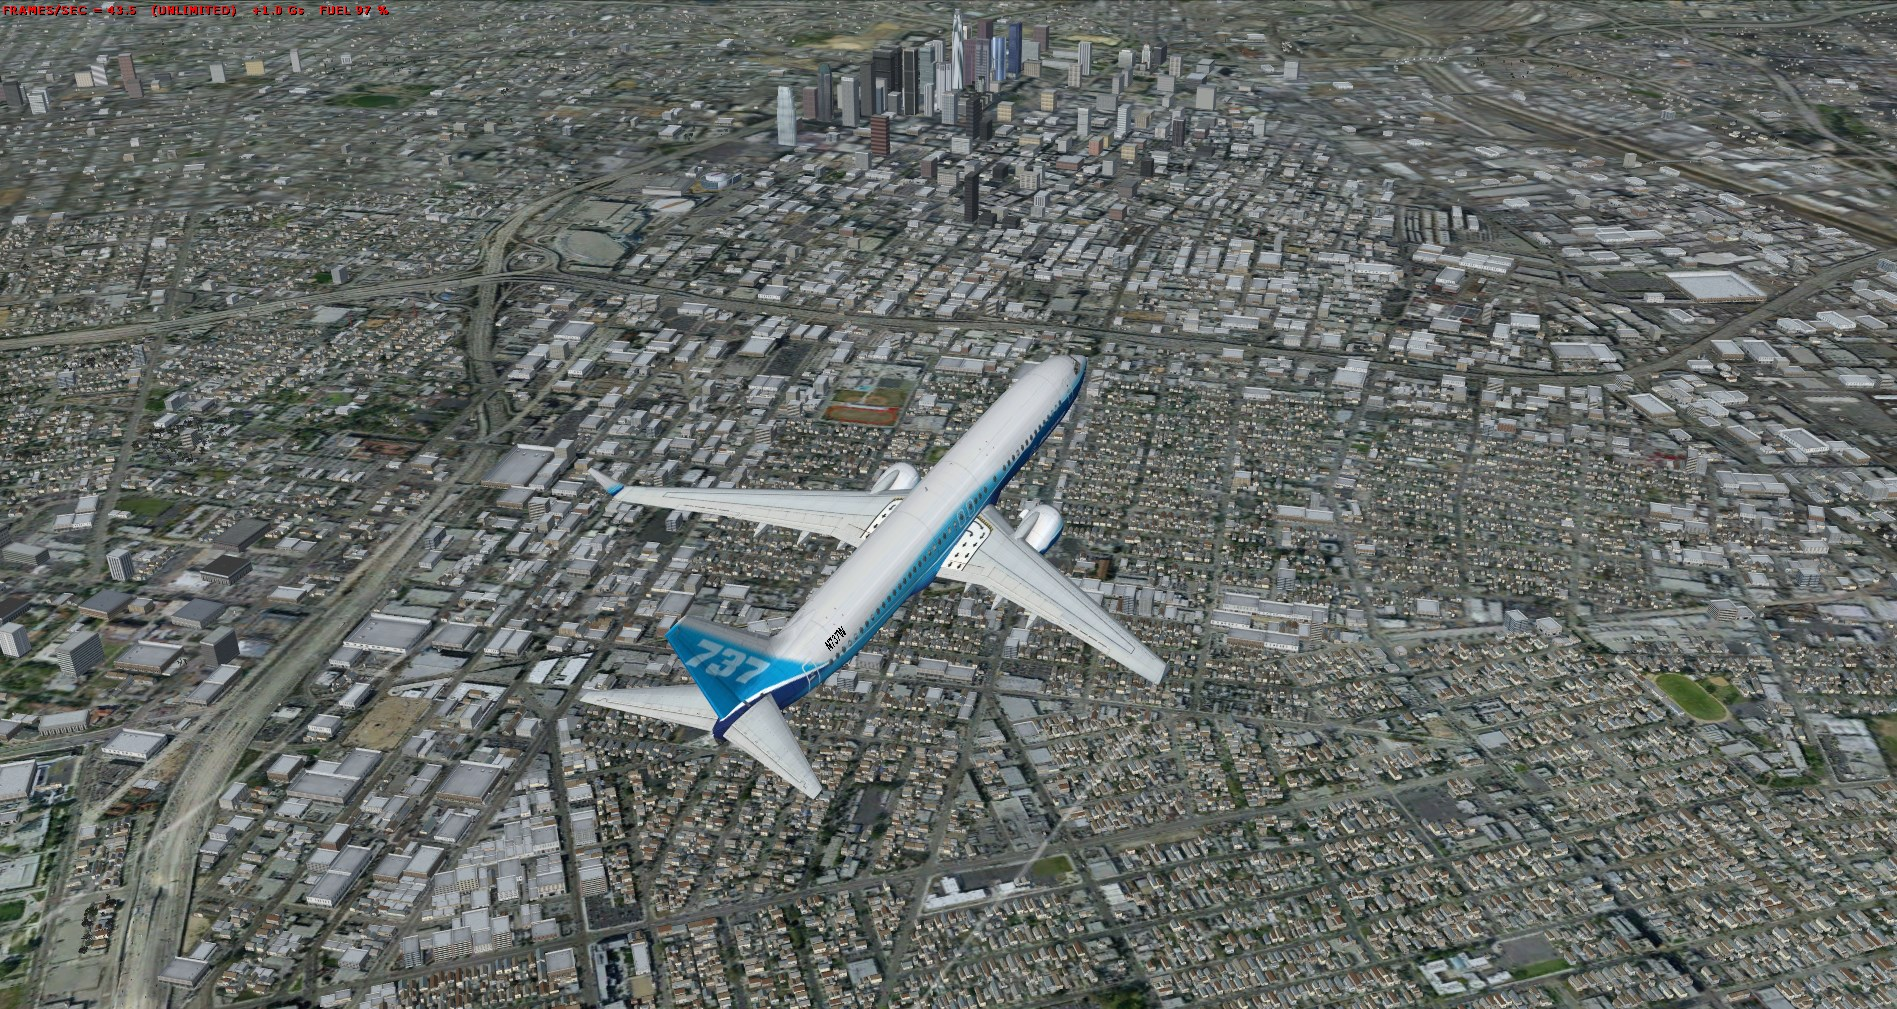 REALWORLD SCENERY - CALIFORNIA 3D ENVIRONMENT FSX P3D